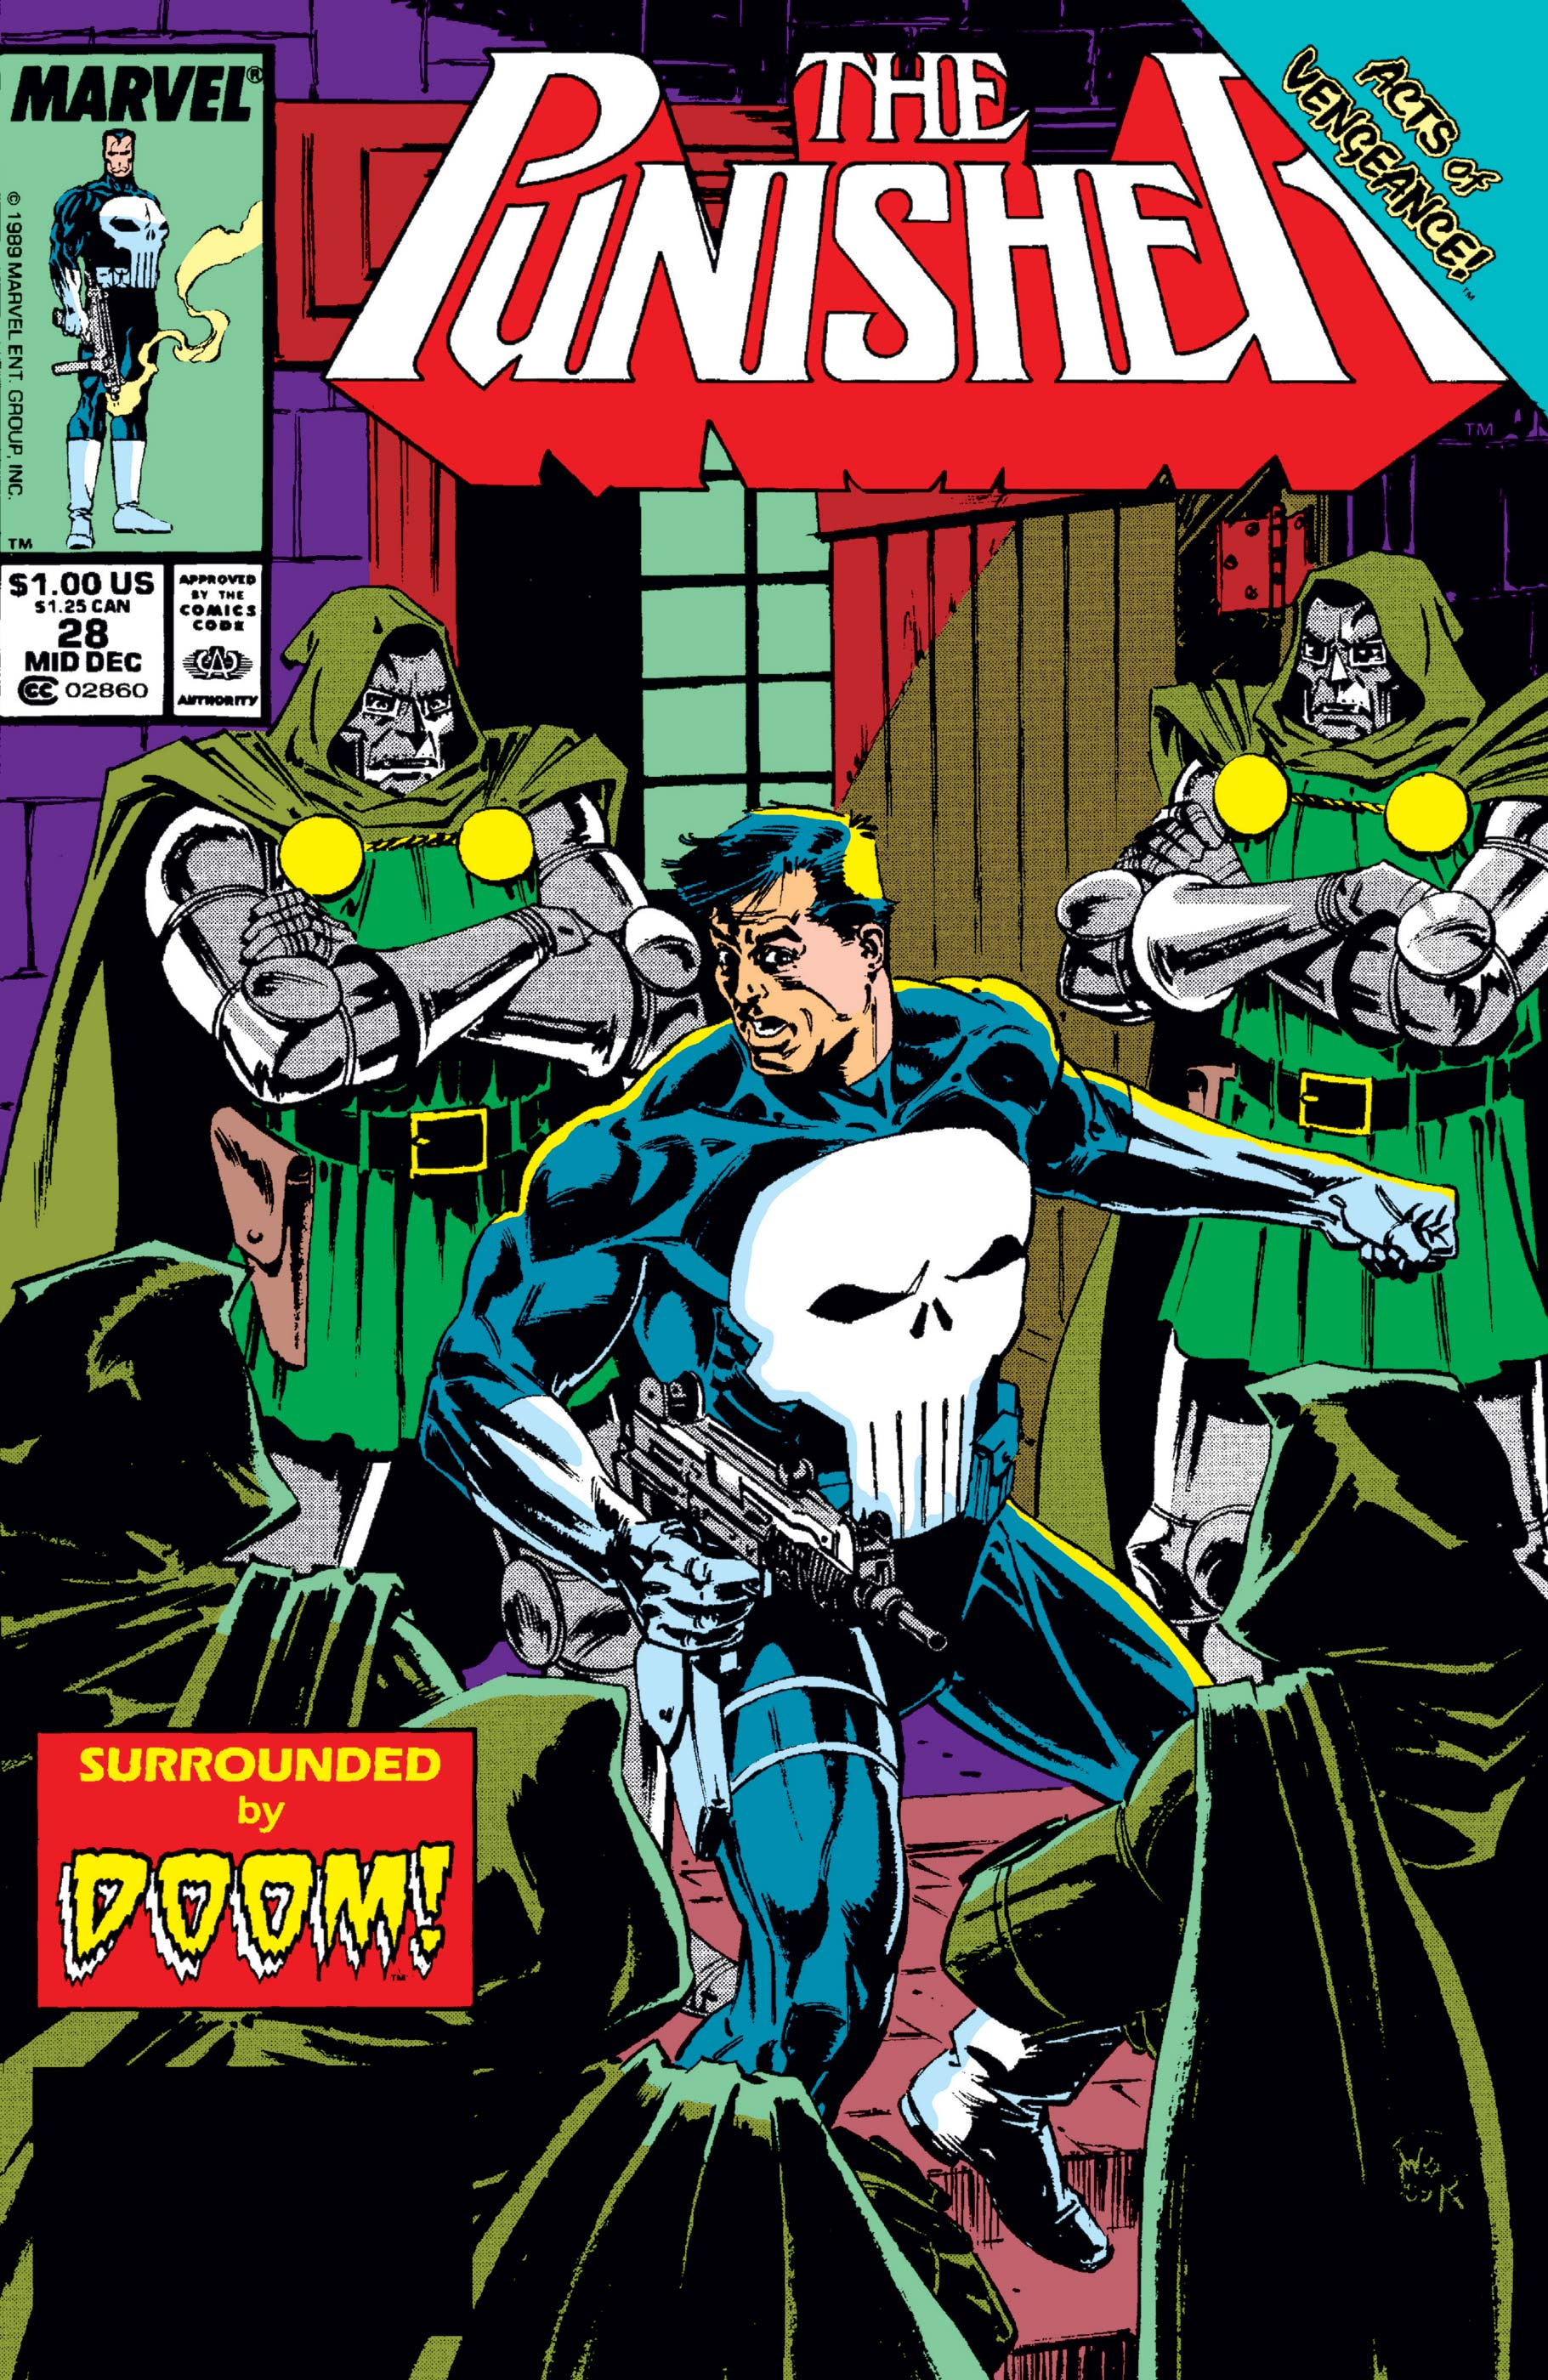 The Punisher (1987) #28